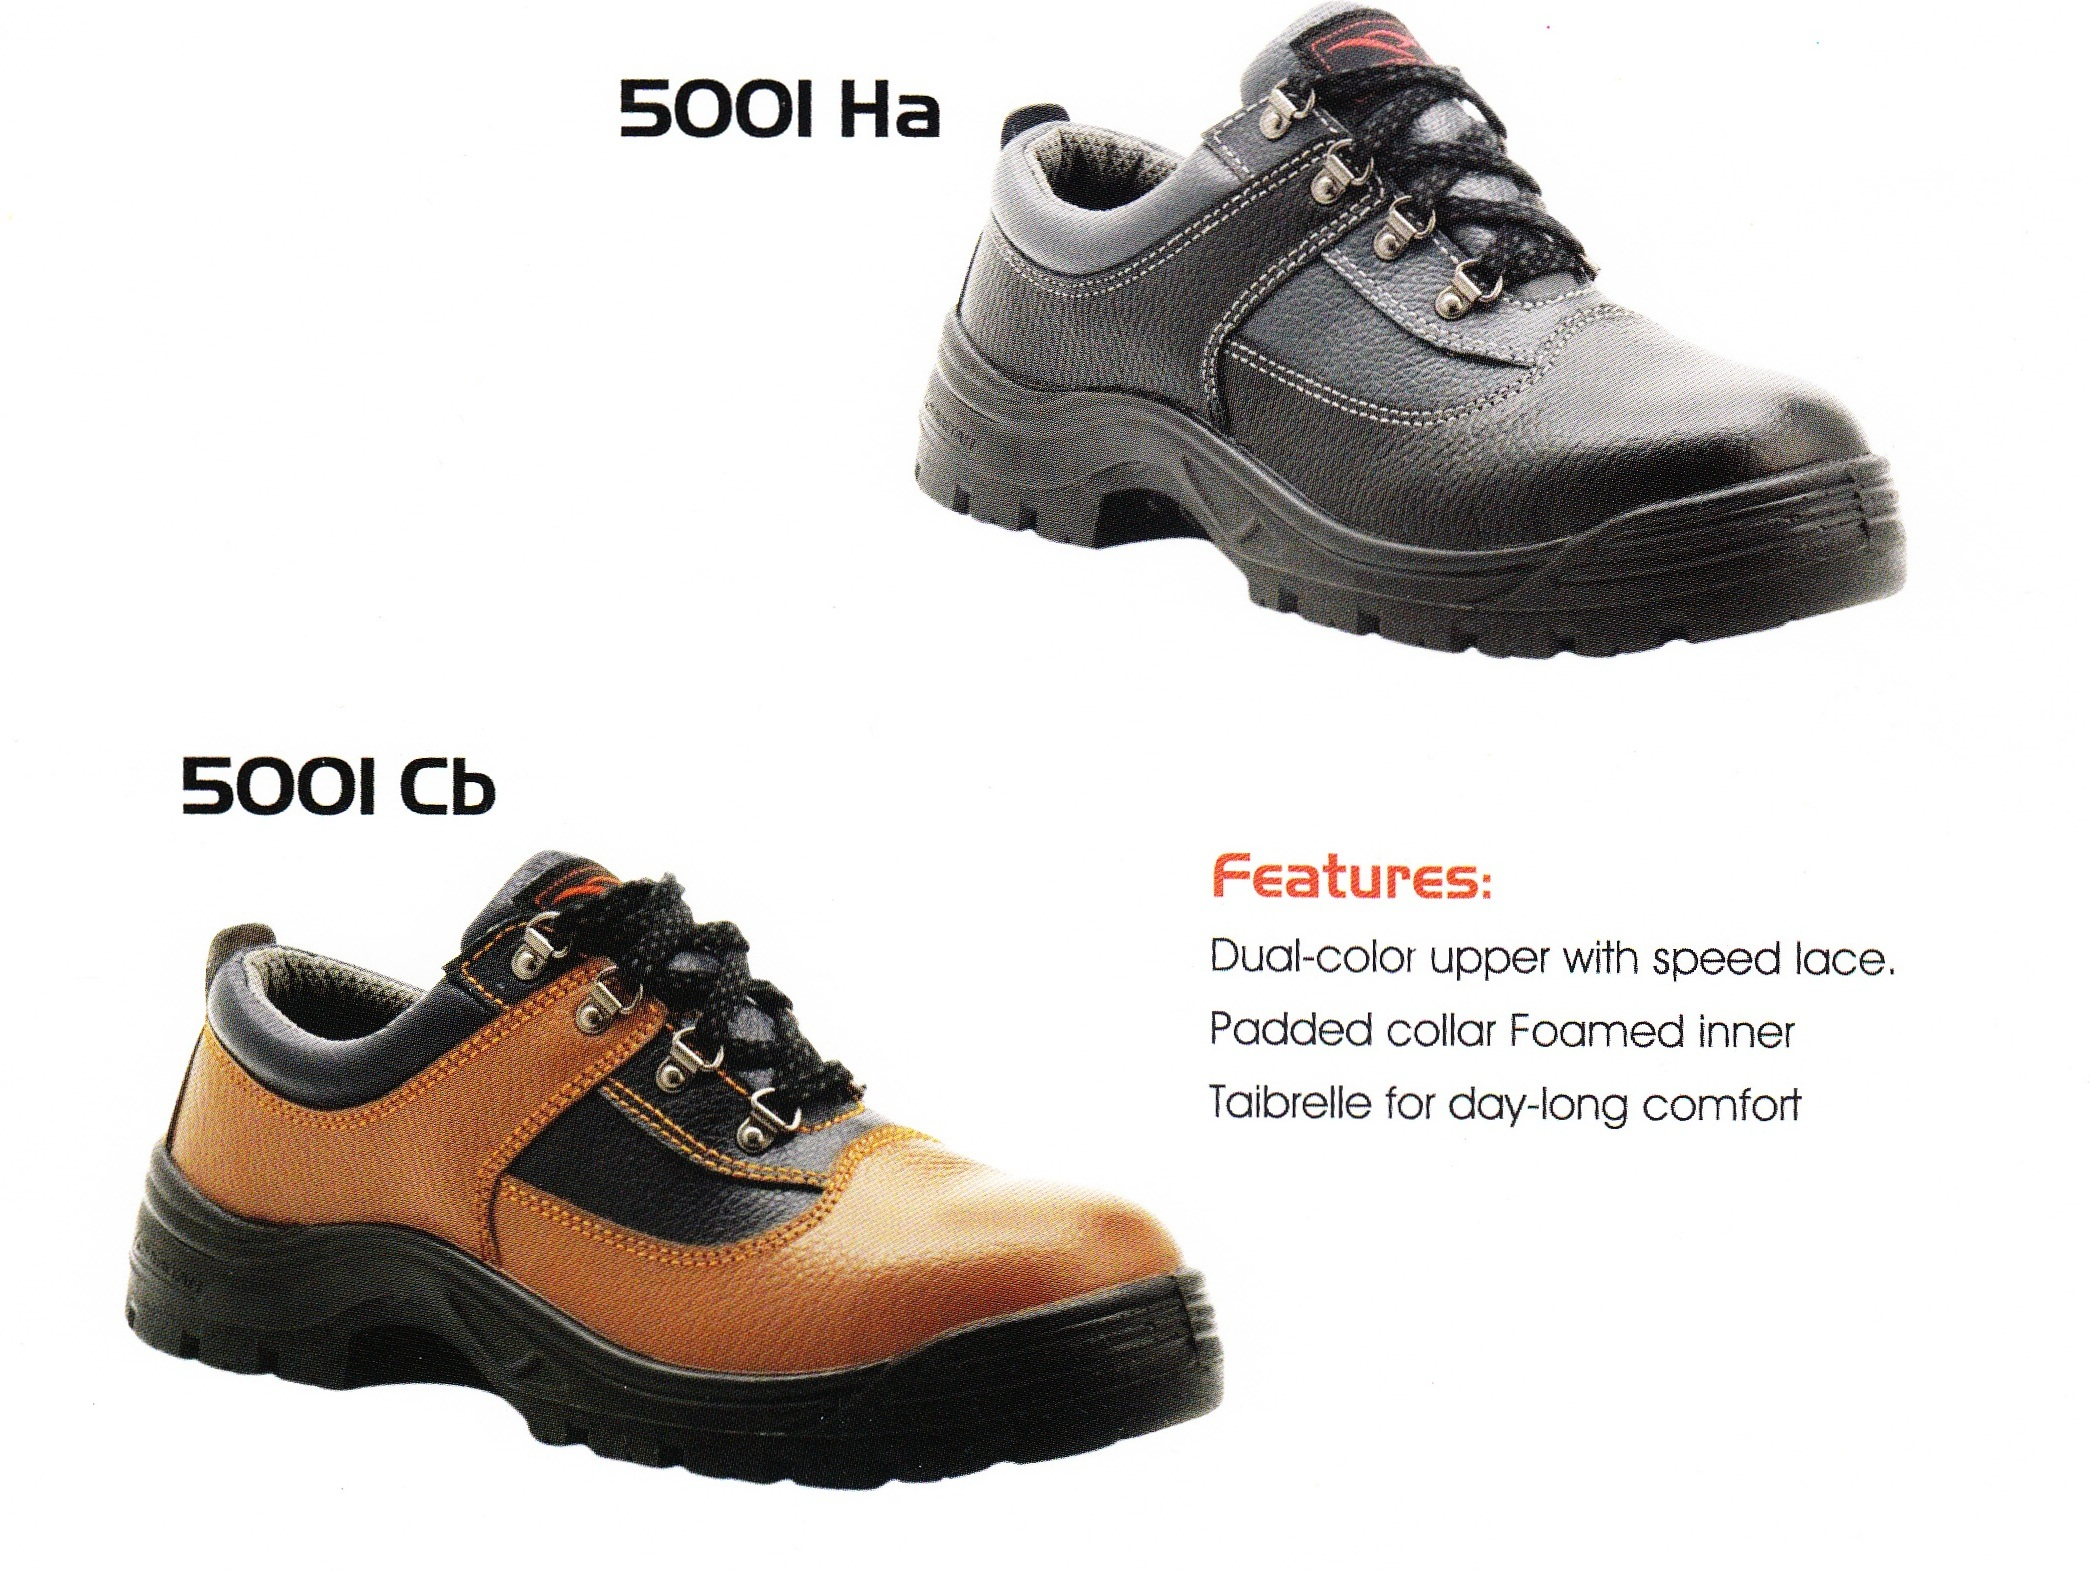 CHEETAH SAFETY SHOES 5001 Ha Amp 5001 Cb